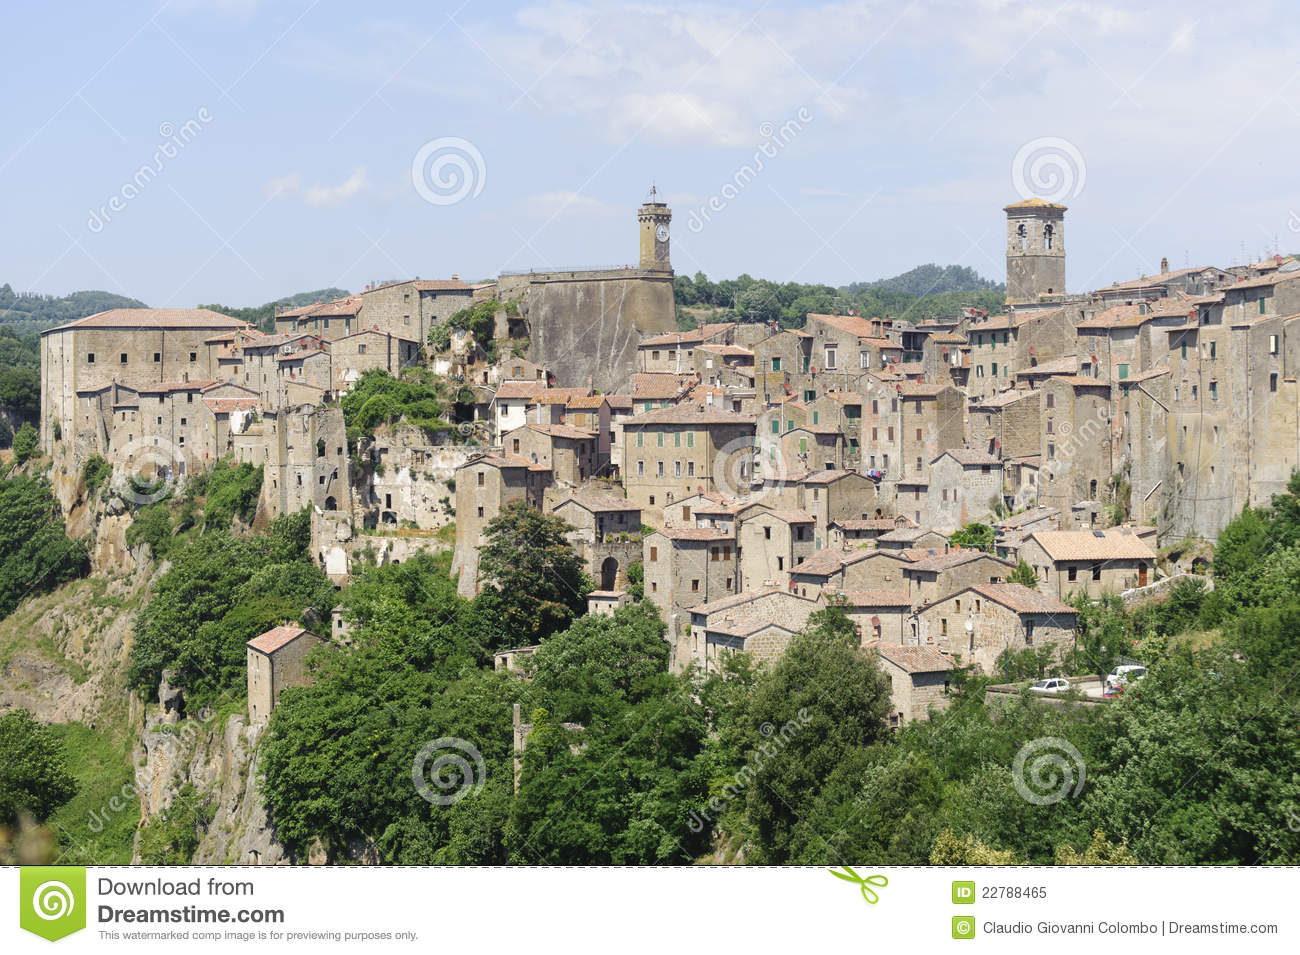 Sorano Italy  city photos gallery : Sorano Grosseto, Tuscany, Italy , panoramic view of the medieval town ...